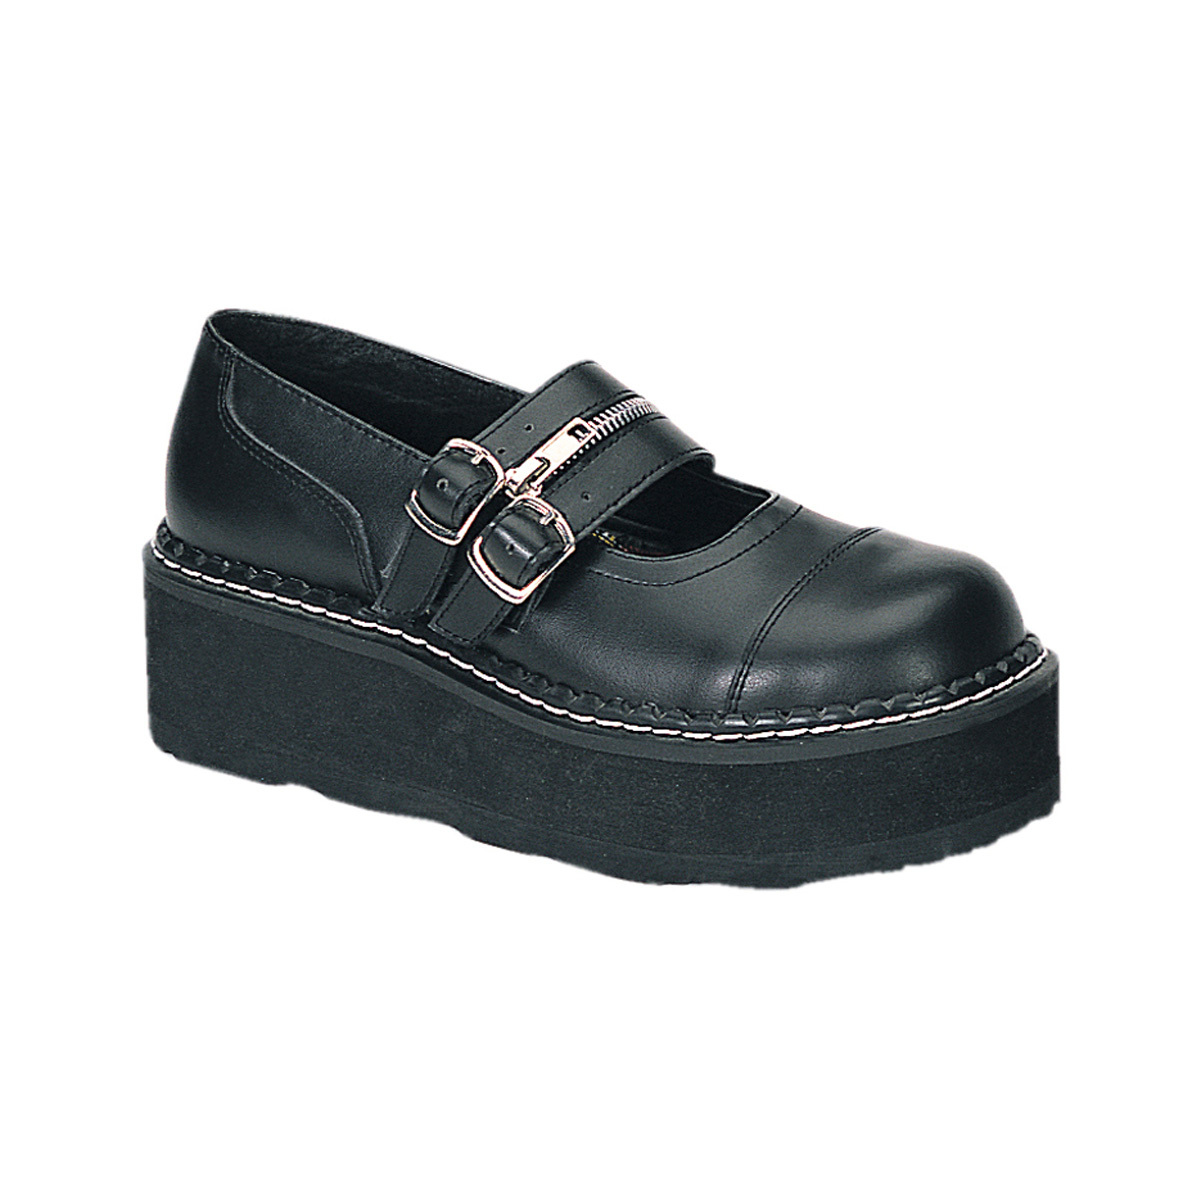 2 Inch Trendy Punk Shoe Double Strap Platform Mary Jane Shoe Black Demonia by